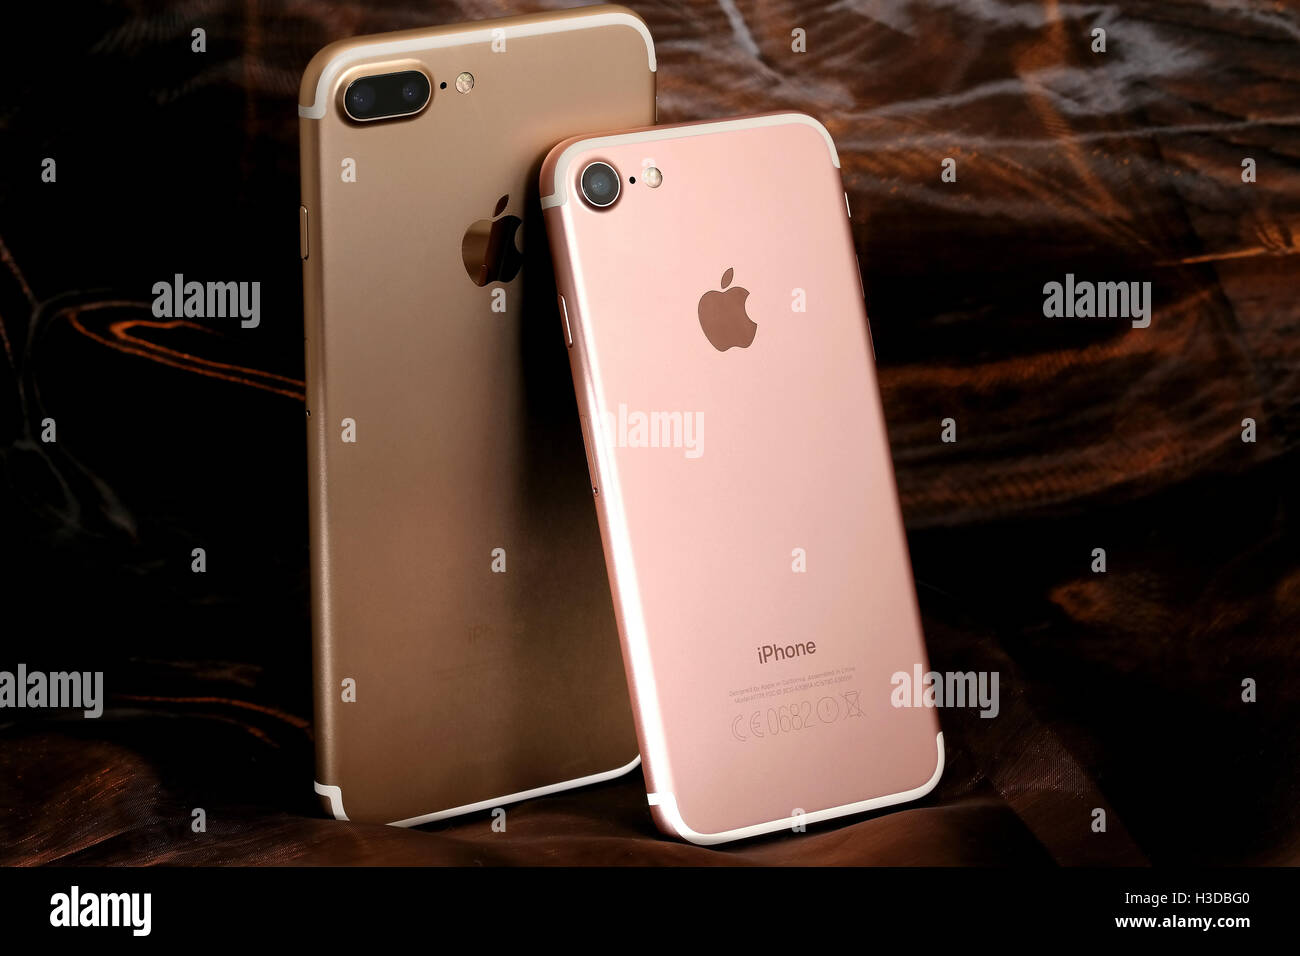 Golden iPhone 7 Plus and pink iPhone 7 - Stock Image